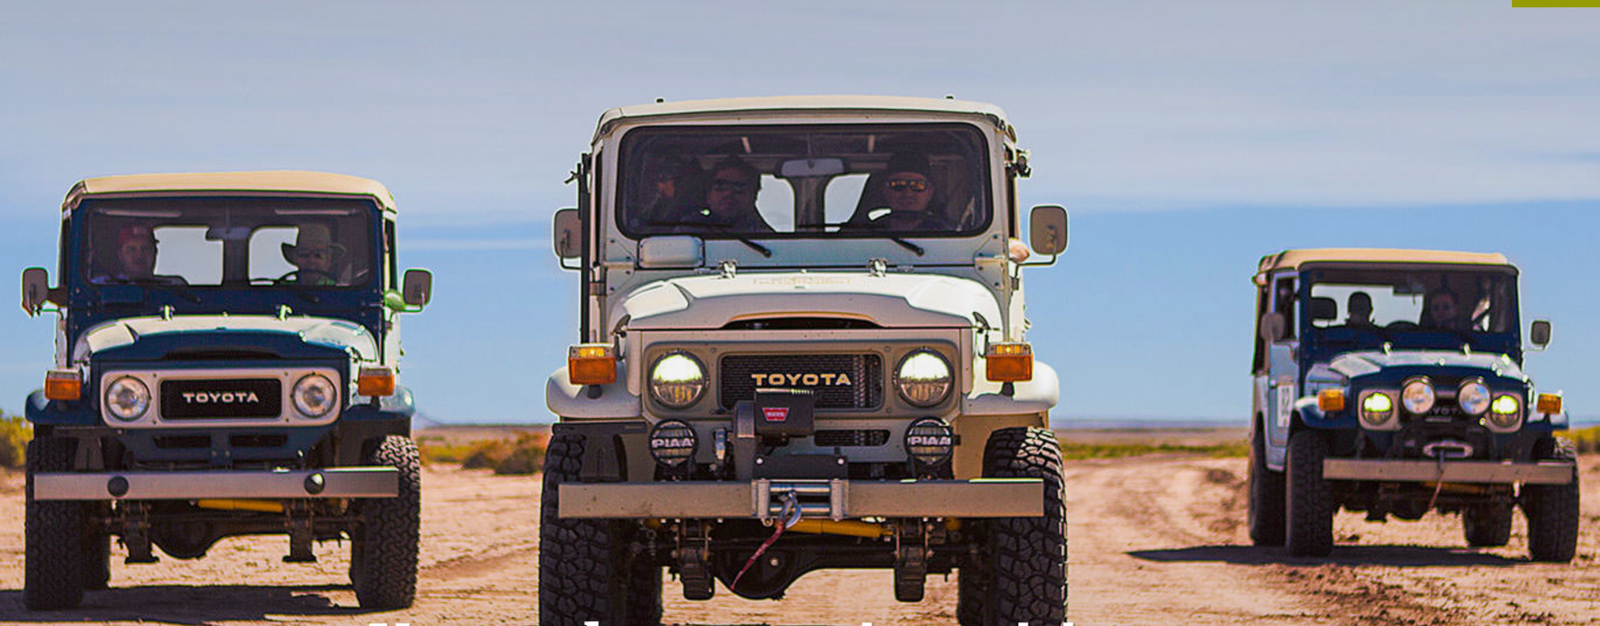 Why not take the path less travelled in your own 1982 Toyota Land Cruiser, completely rebuilt to your specifications? FJ Company's vision is to create a family-friendly traveller that's fit enough for the rigors of driving in the Colorado backcountry and equally as sure-footed on big-city freeways. It's one part classic Land Cruiser, one part